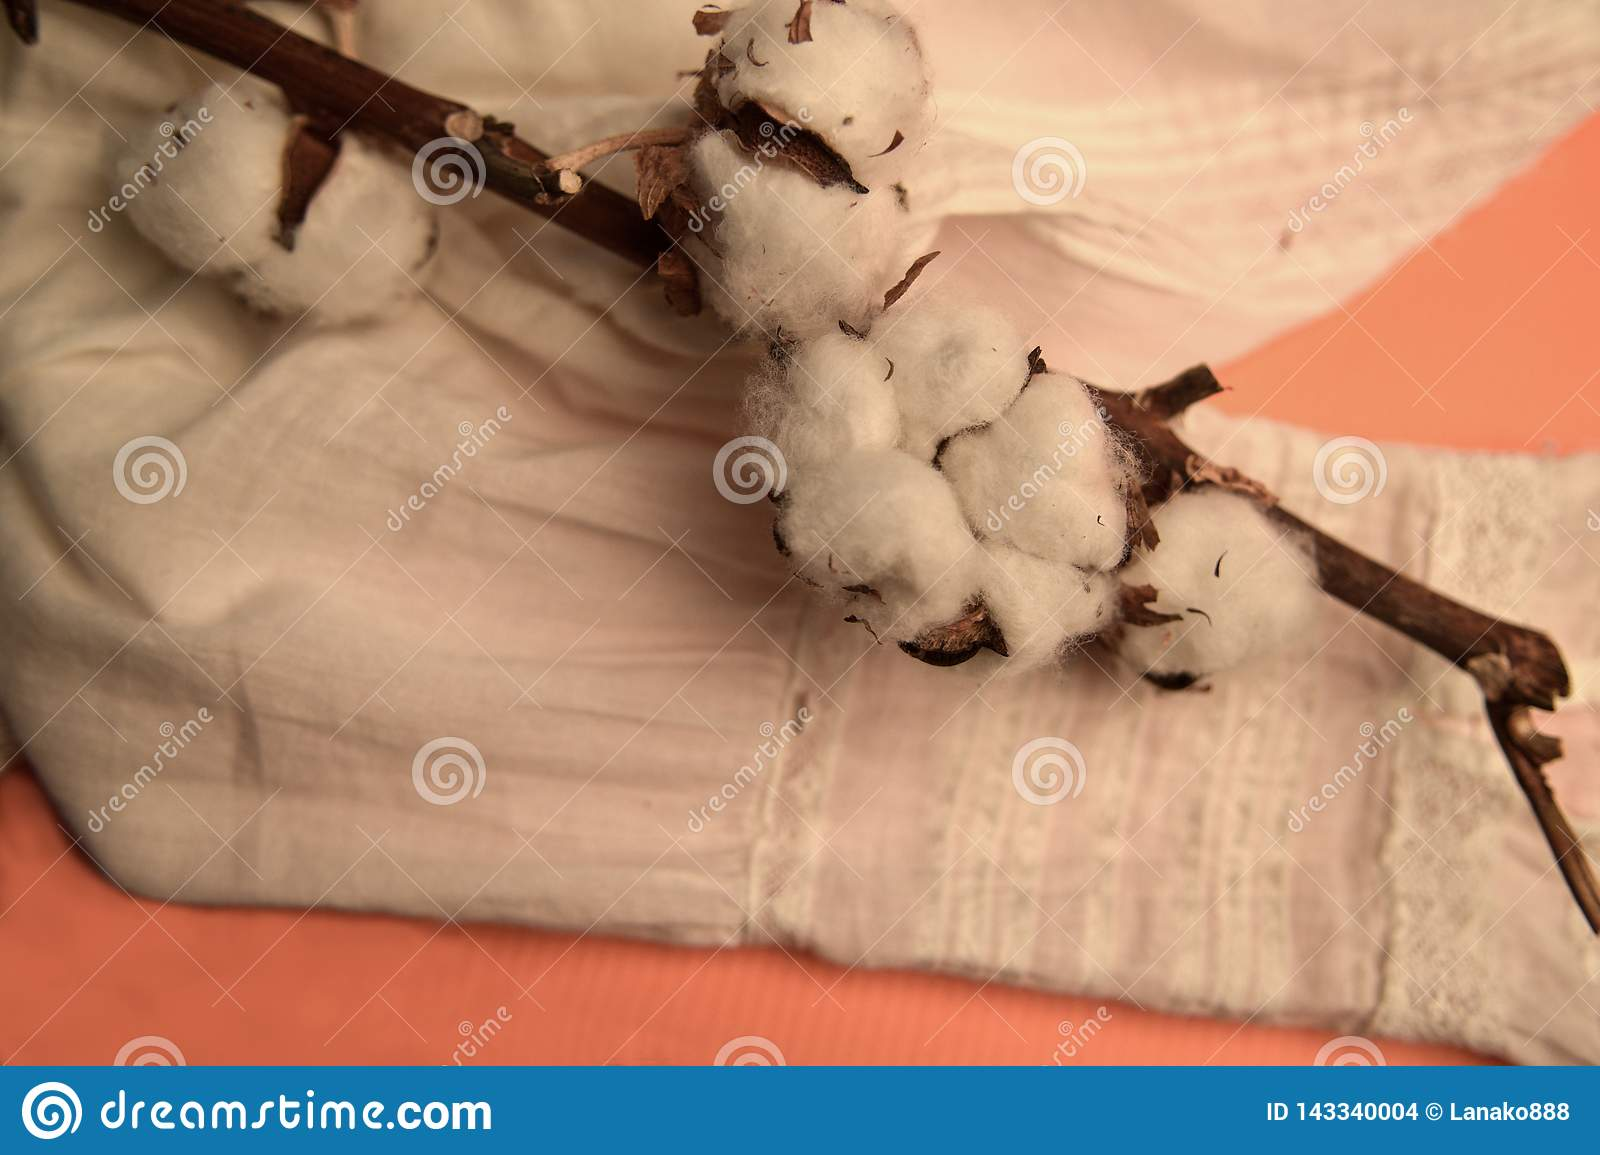 A branch with ripened and opened cotton bolls lies on a white shirt